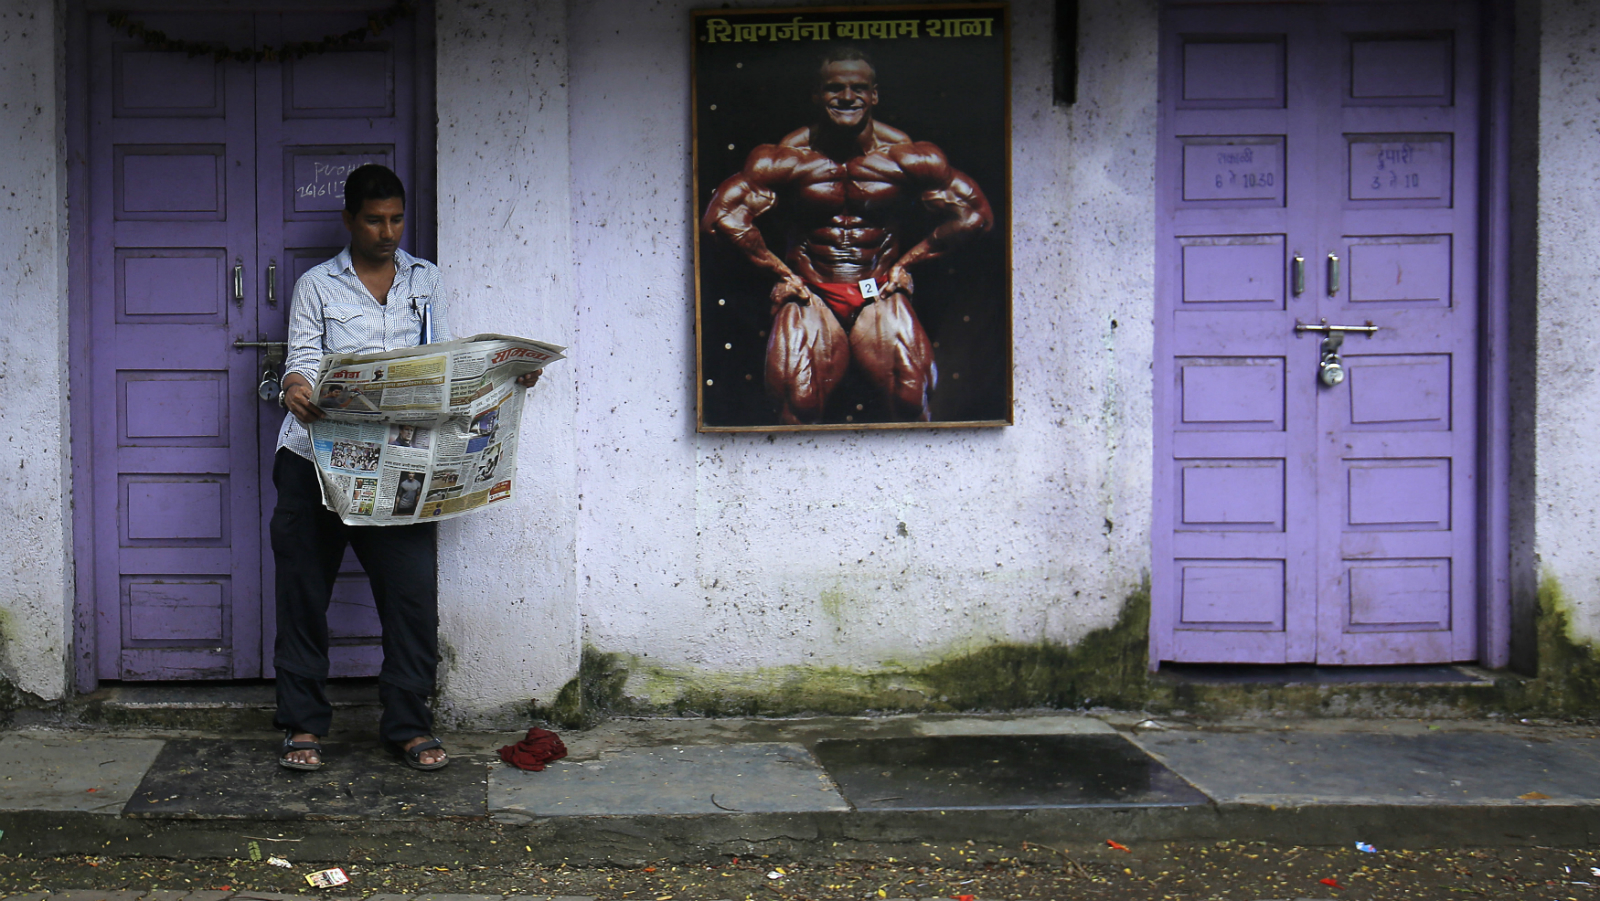 A man reads a newspaper outside a closed gym in Mumbai July 3, 2013. REUTERS/Danish Siddiqui